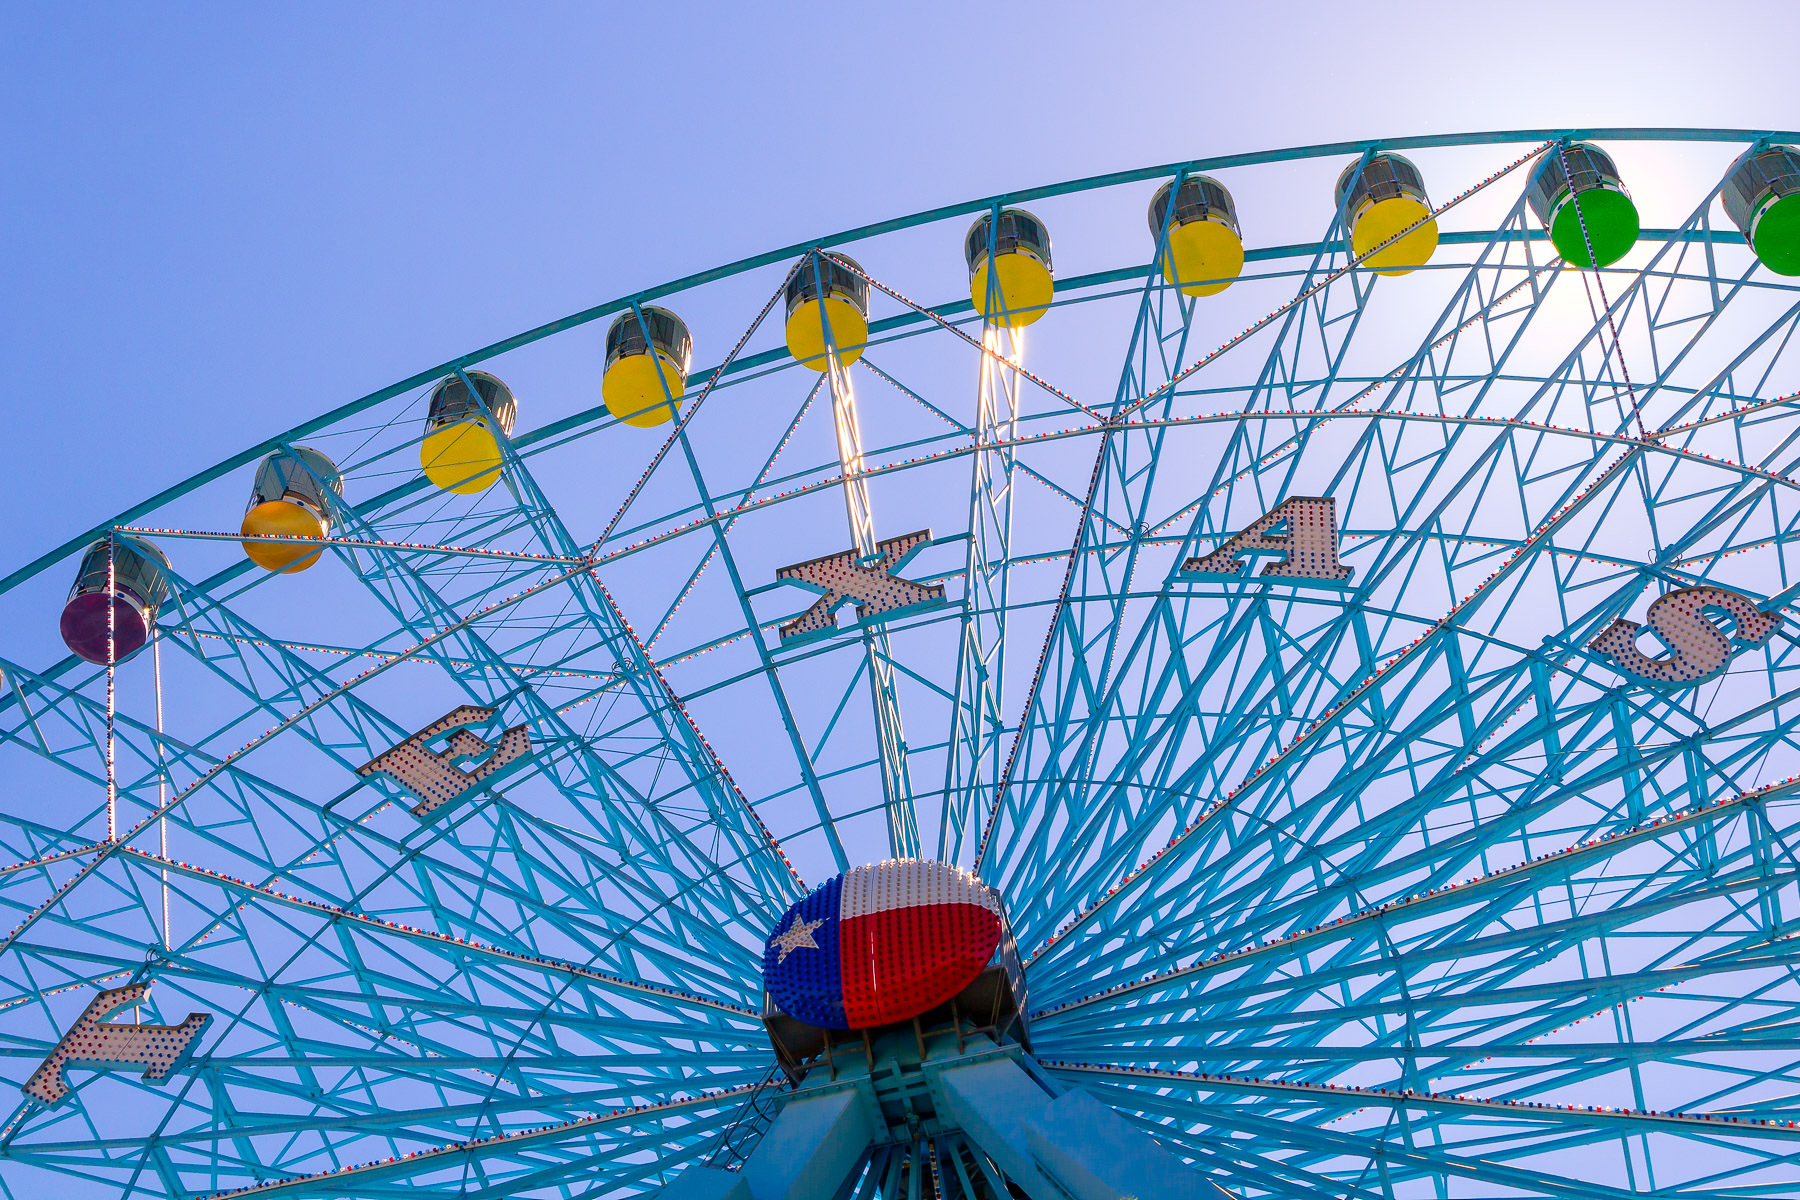 The Texas Star Ferris Wheel rises into the morning sky at Dallas' Fair Park.